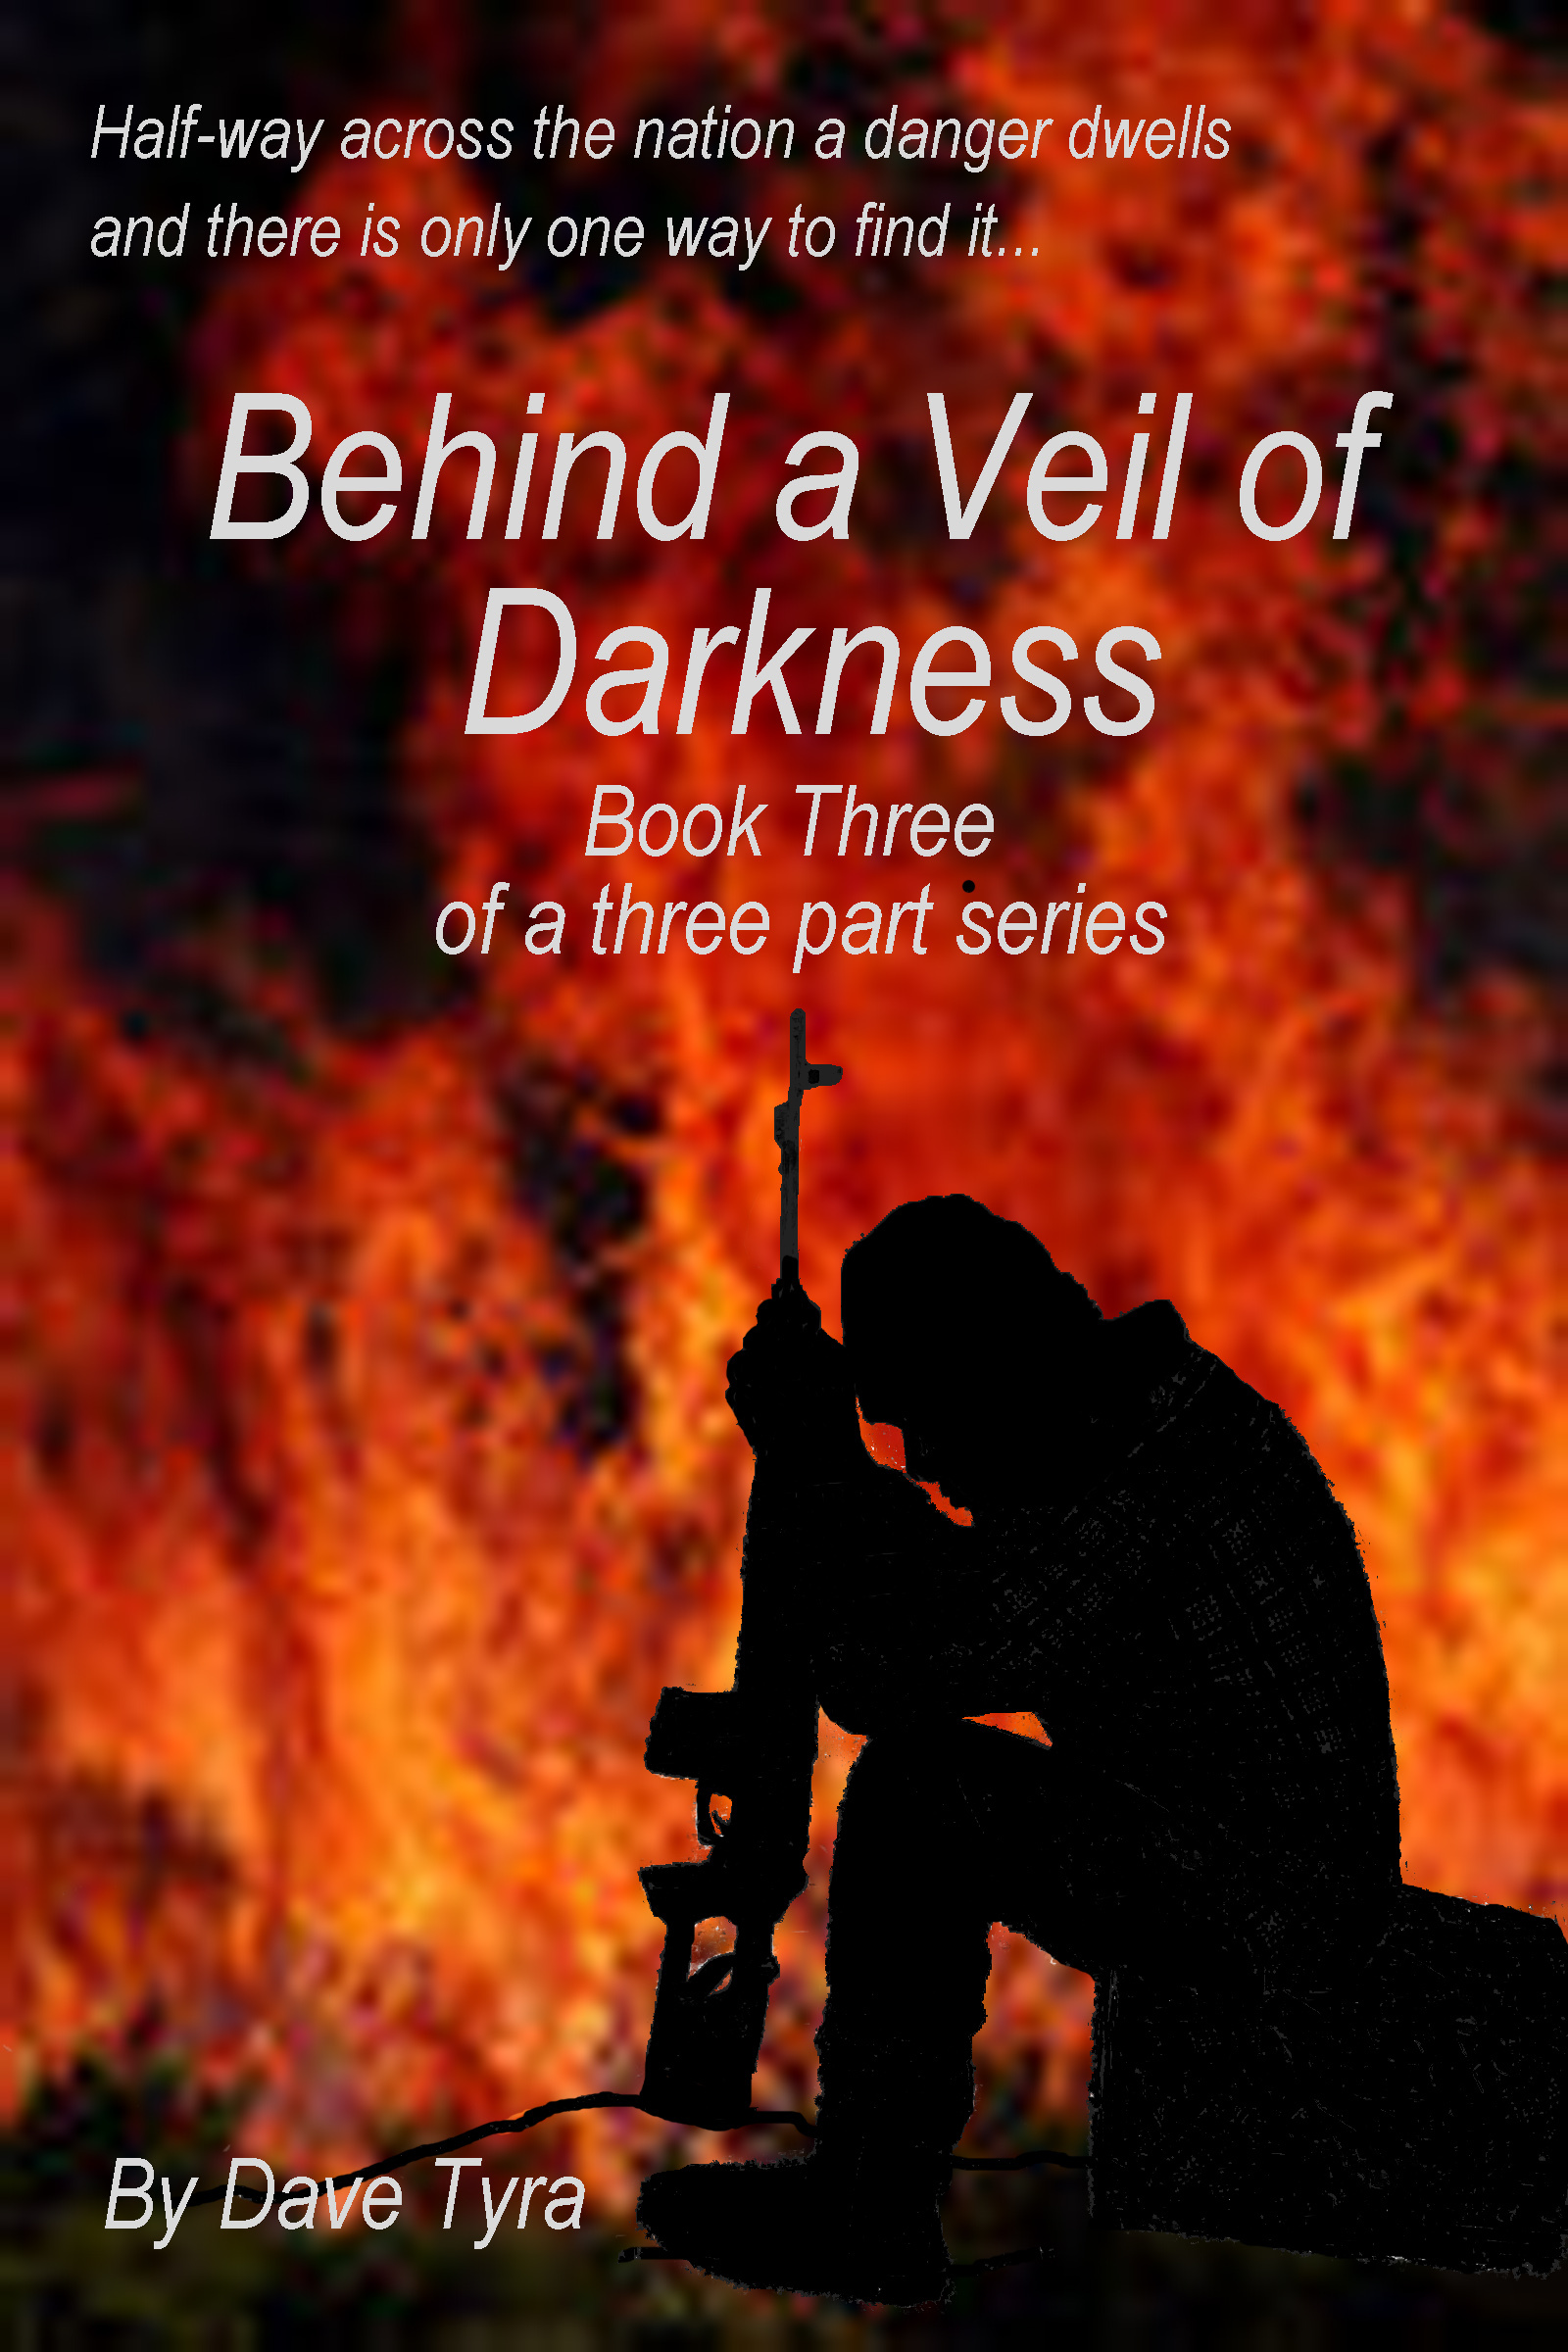 Behind a Veil of Darkness: Book Three